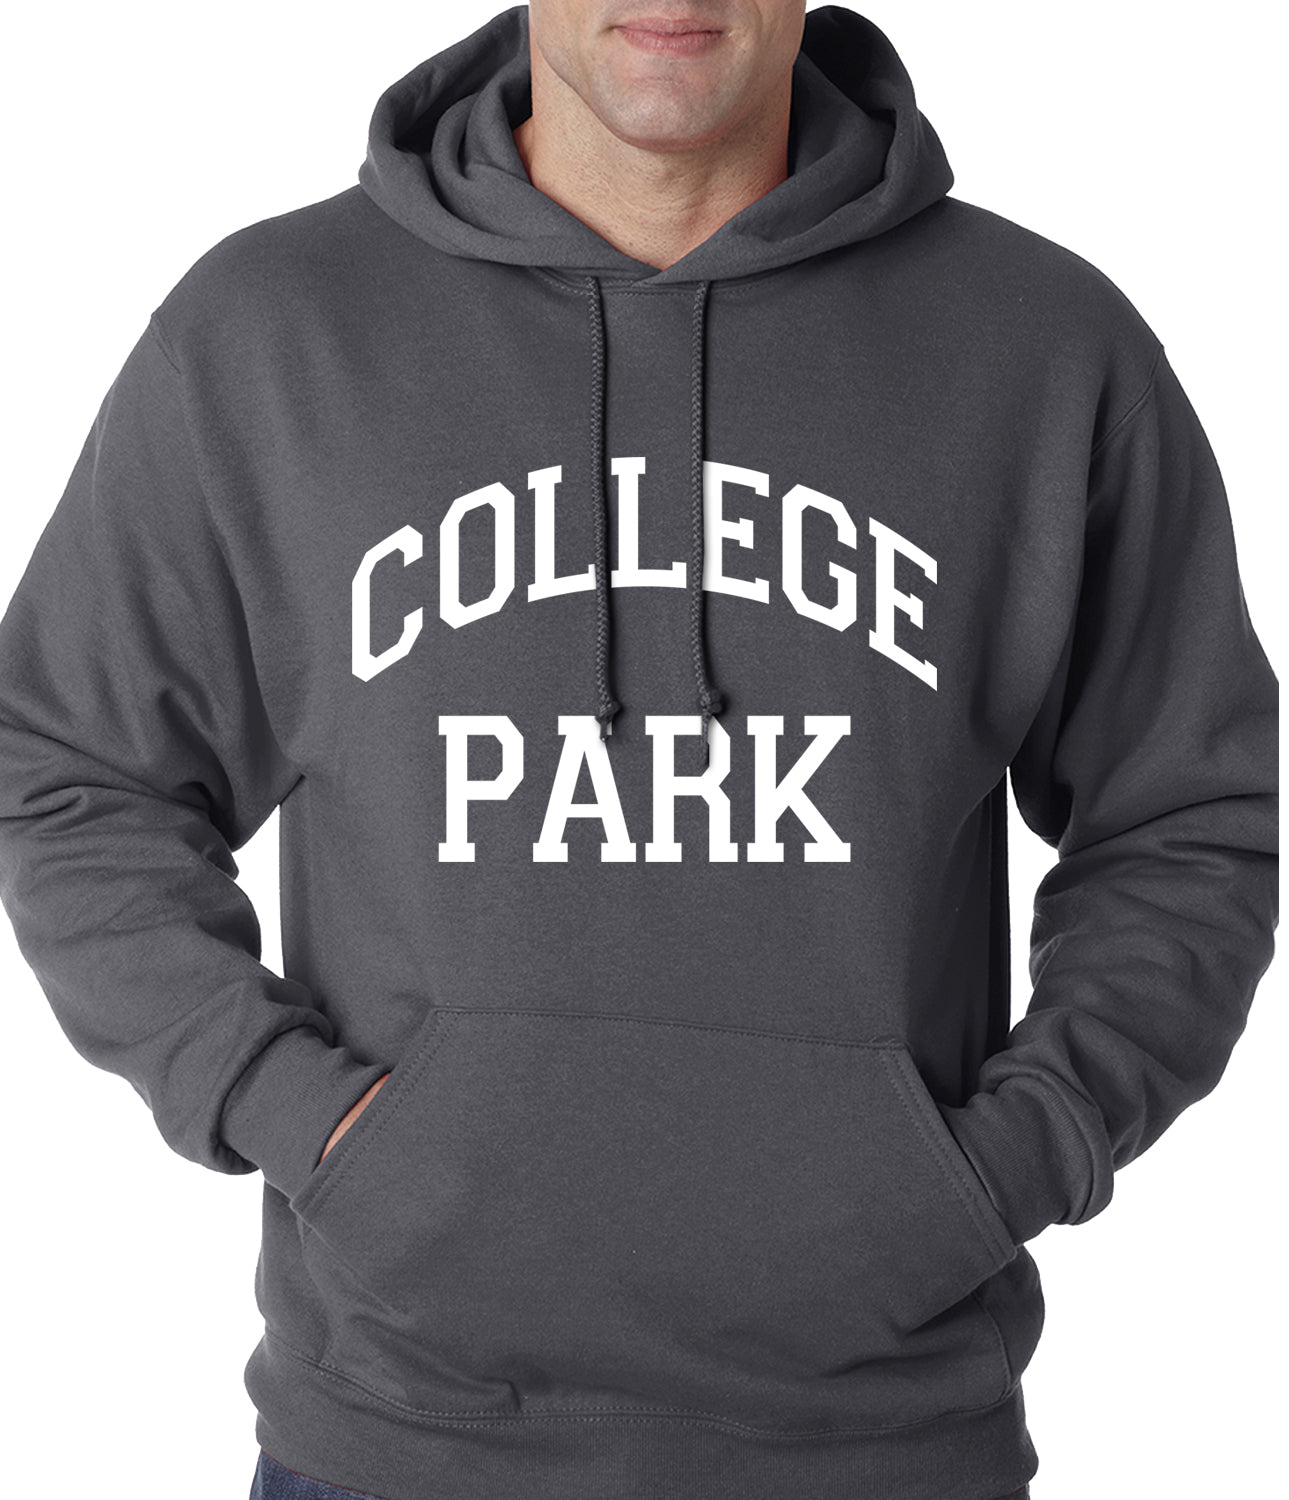 College Park Brooklyn Adult Hoodie